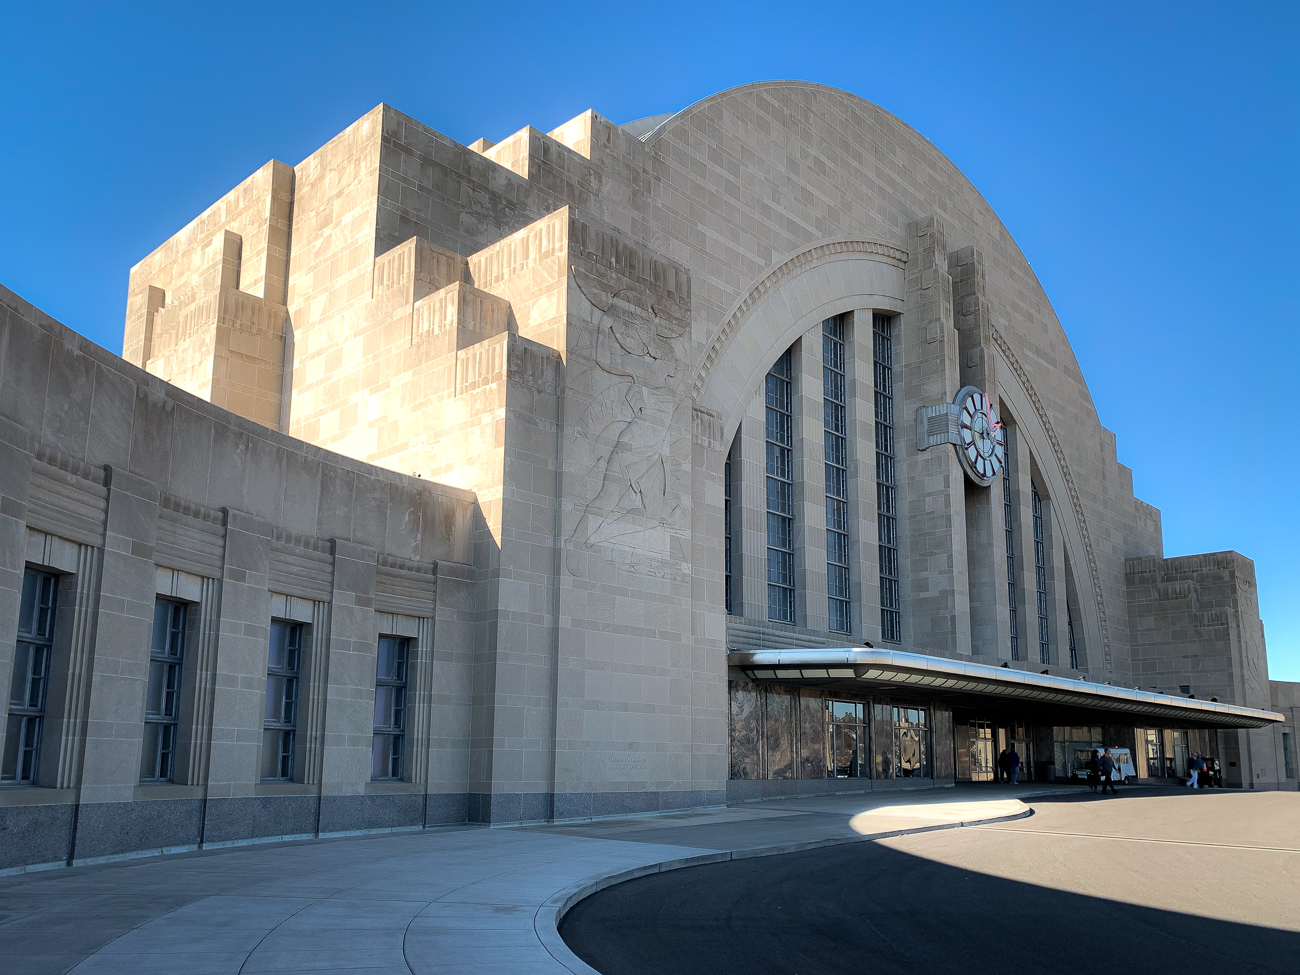 Union Terminal is now primarily home to the Cincinnati Museum Center, but long before it ever housed dinosaur bones, trains were its priority. While trains still enter and depart the station every day, it no longer sees the volume of passenger trains it once did. / Image: Phil Armstrong, Cincinnati Refined // Published: 1.17.20